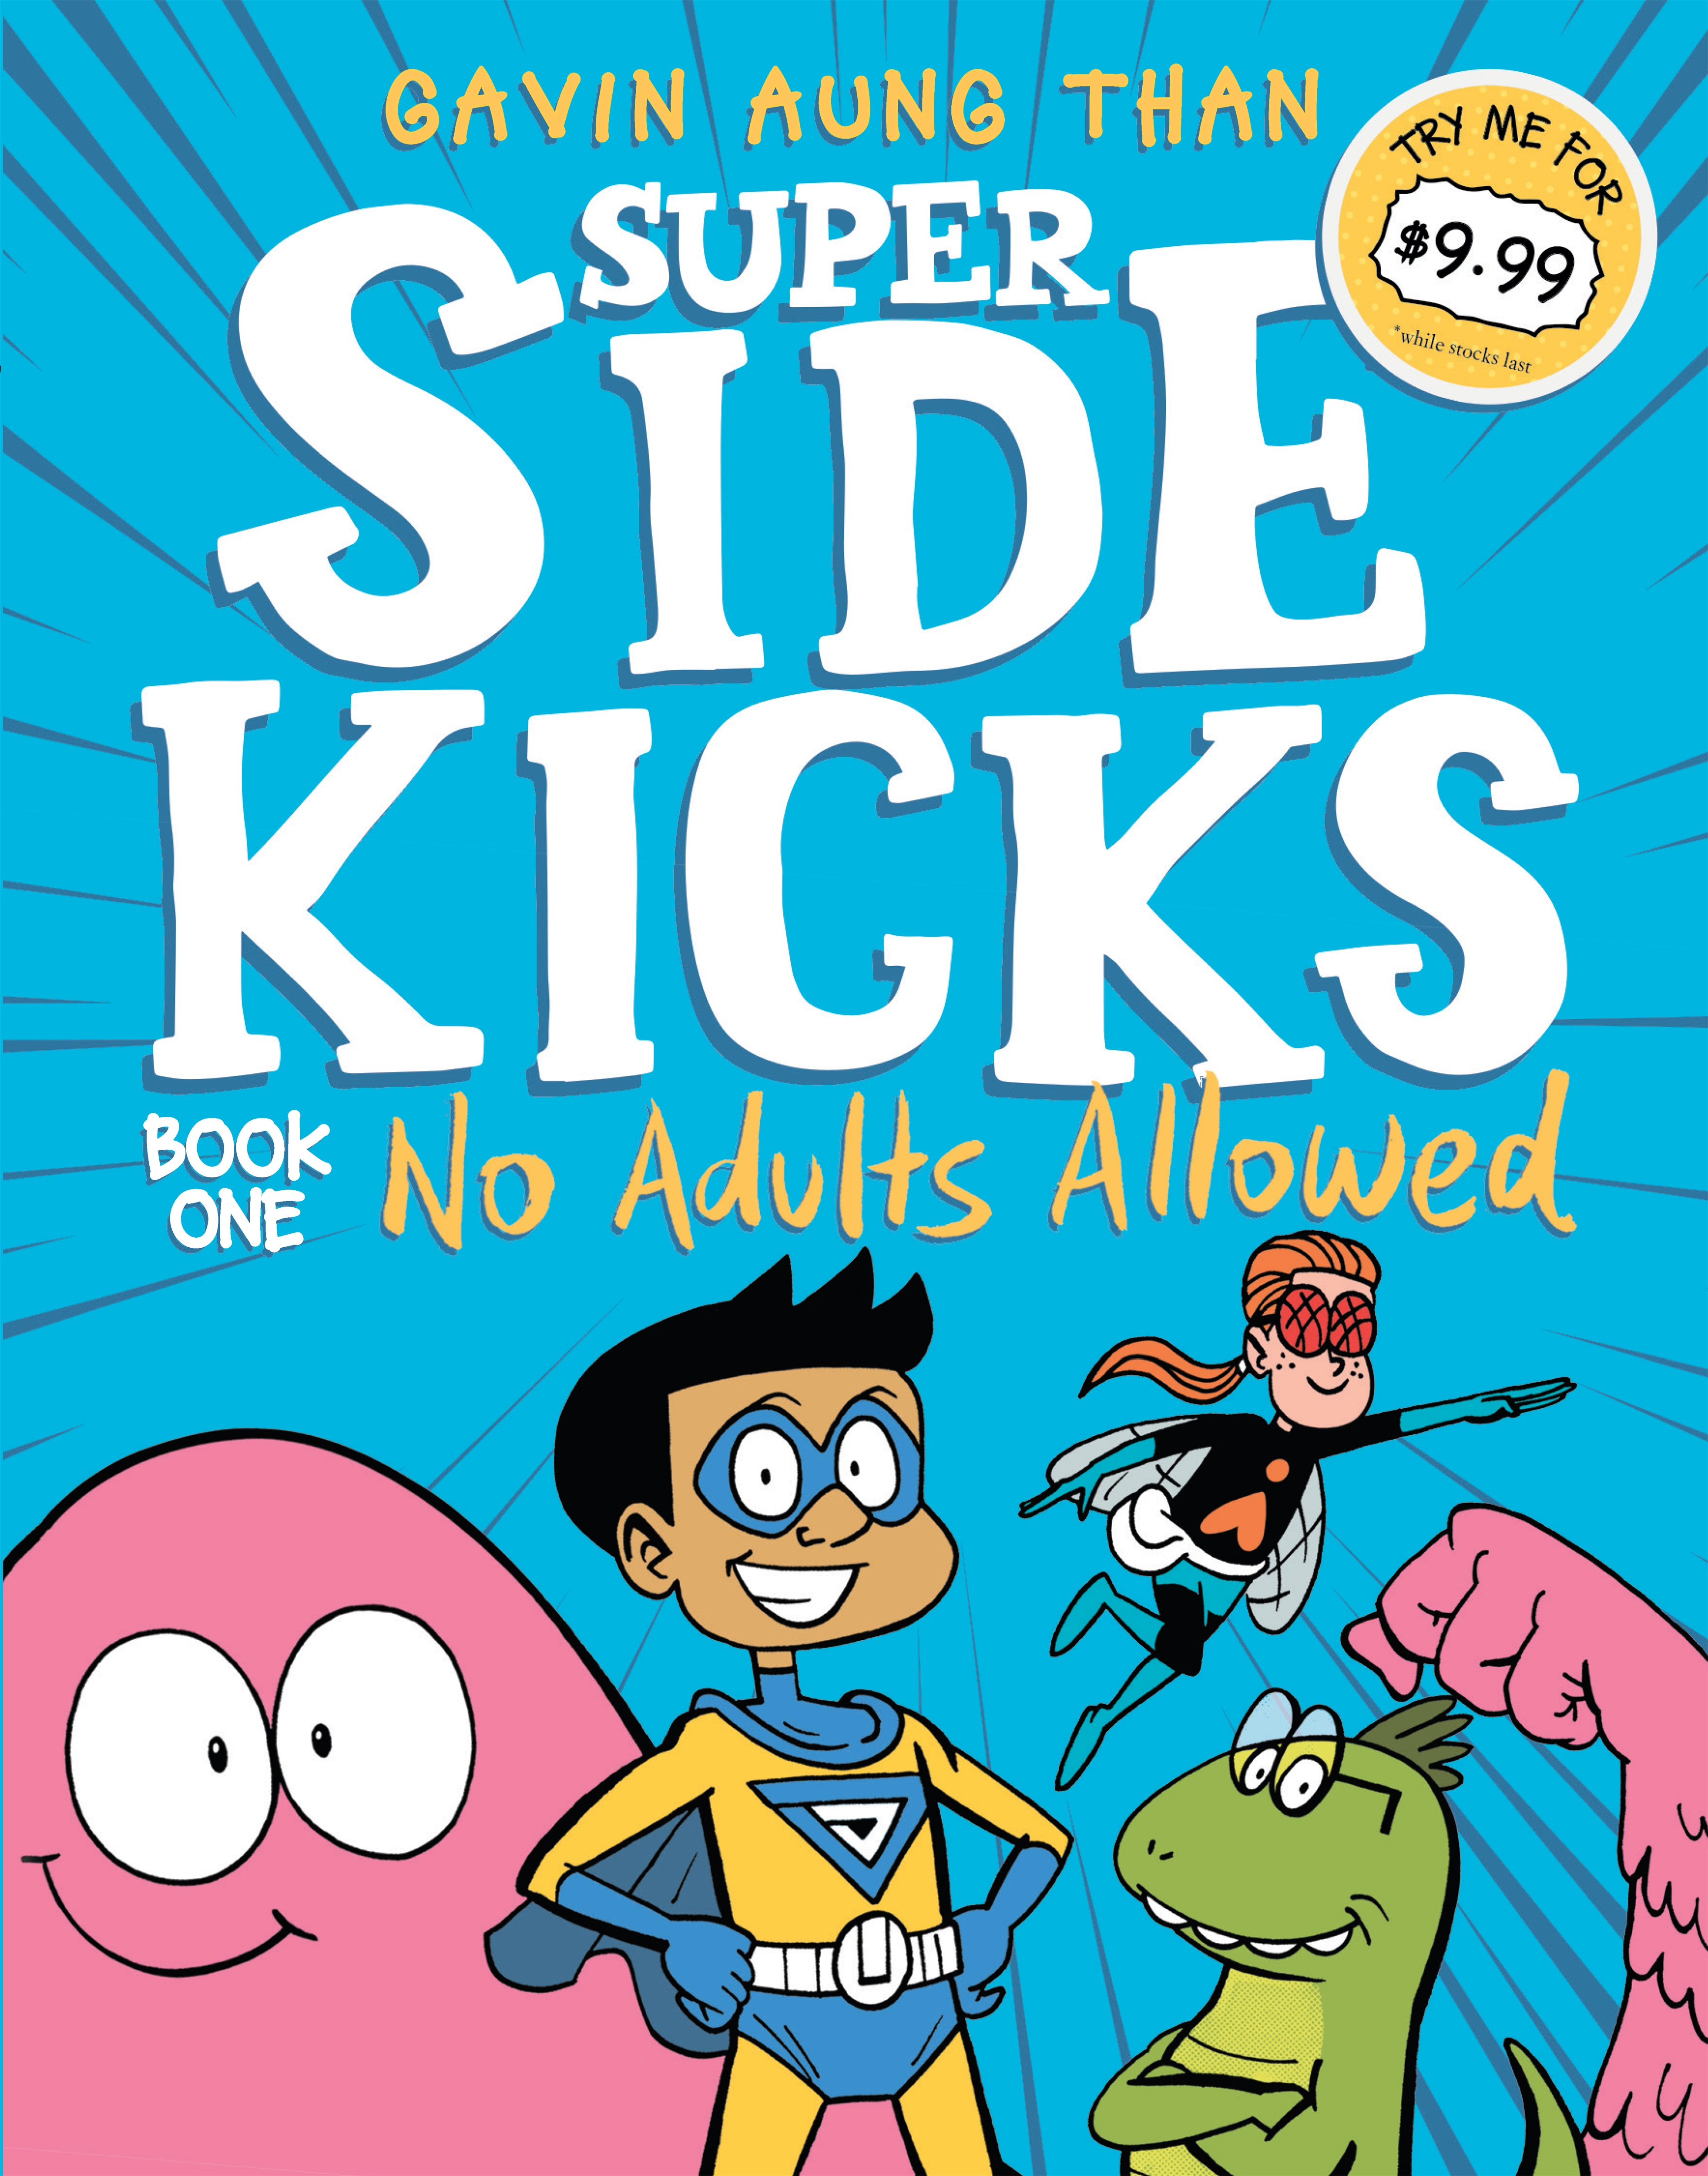 Animated Sidekick Connects Parents To >> Super Sidekicks 1 No Adults Allowed By Gavin Aung Than Penguin